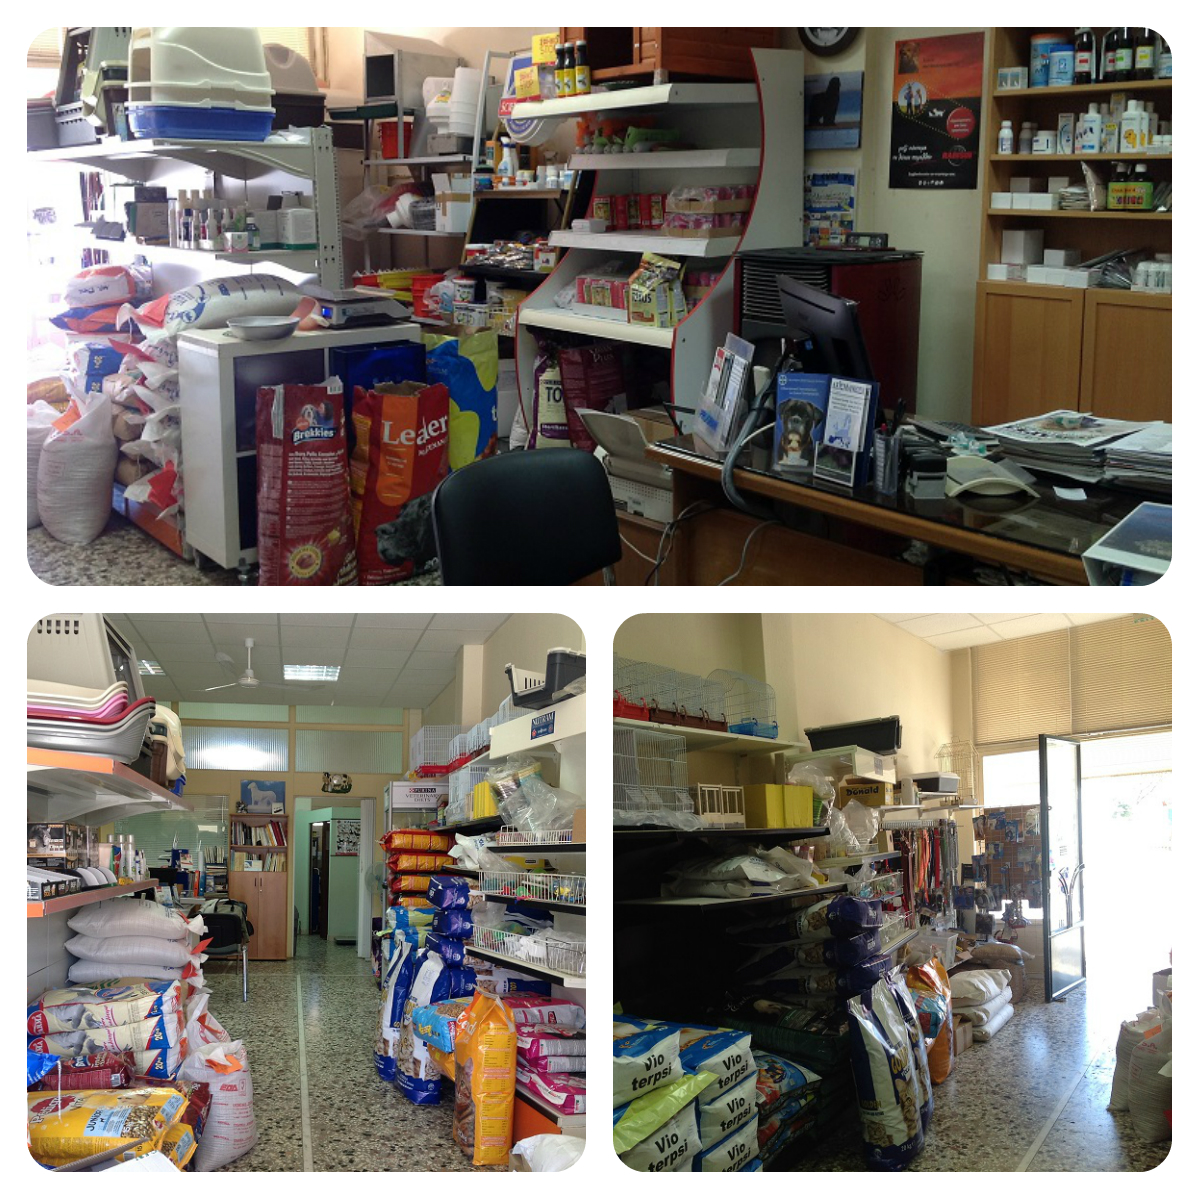 pet_shop_prosfores-koufalia-thessalonikis-konstantinidis-antonis-collage1.jpg